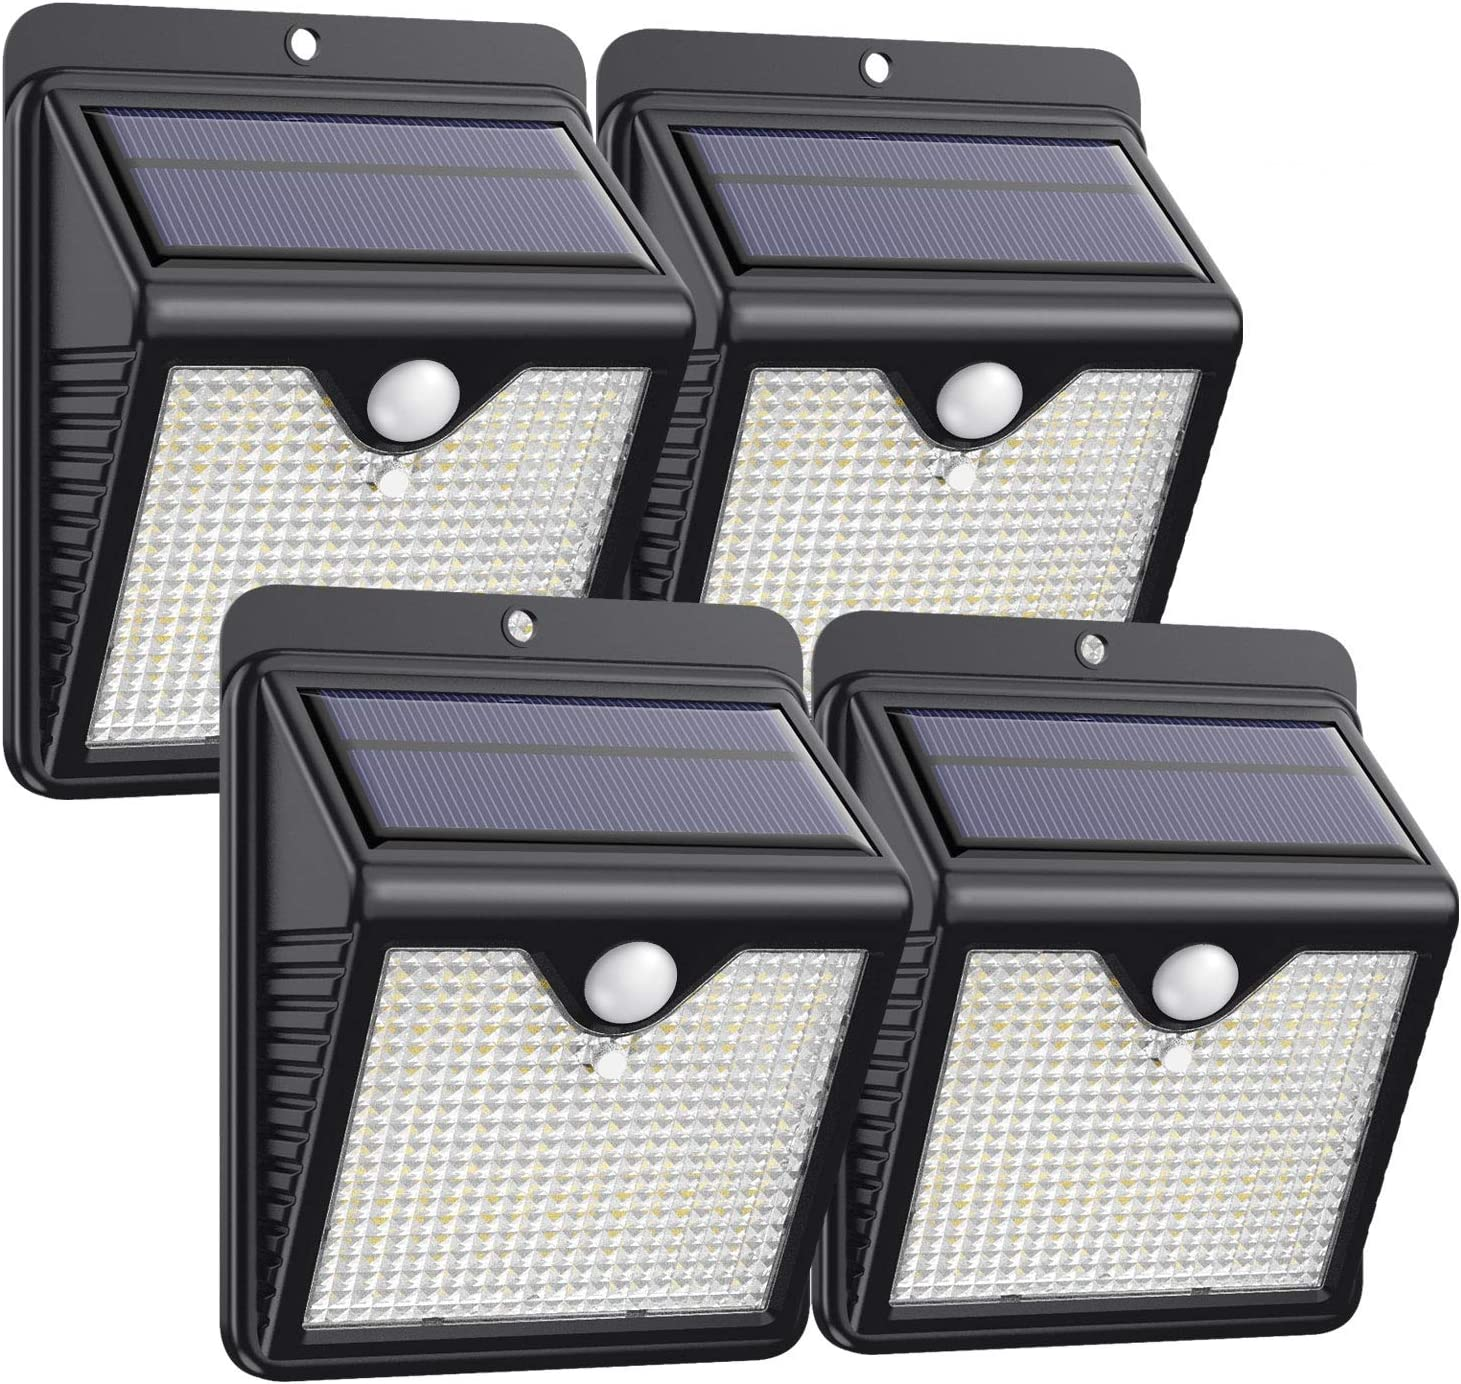 Solar Lights Super intense SALE Max 43% OFF Outdoor 4Pack - Bright Securit 150LED